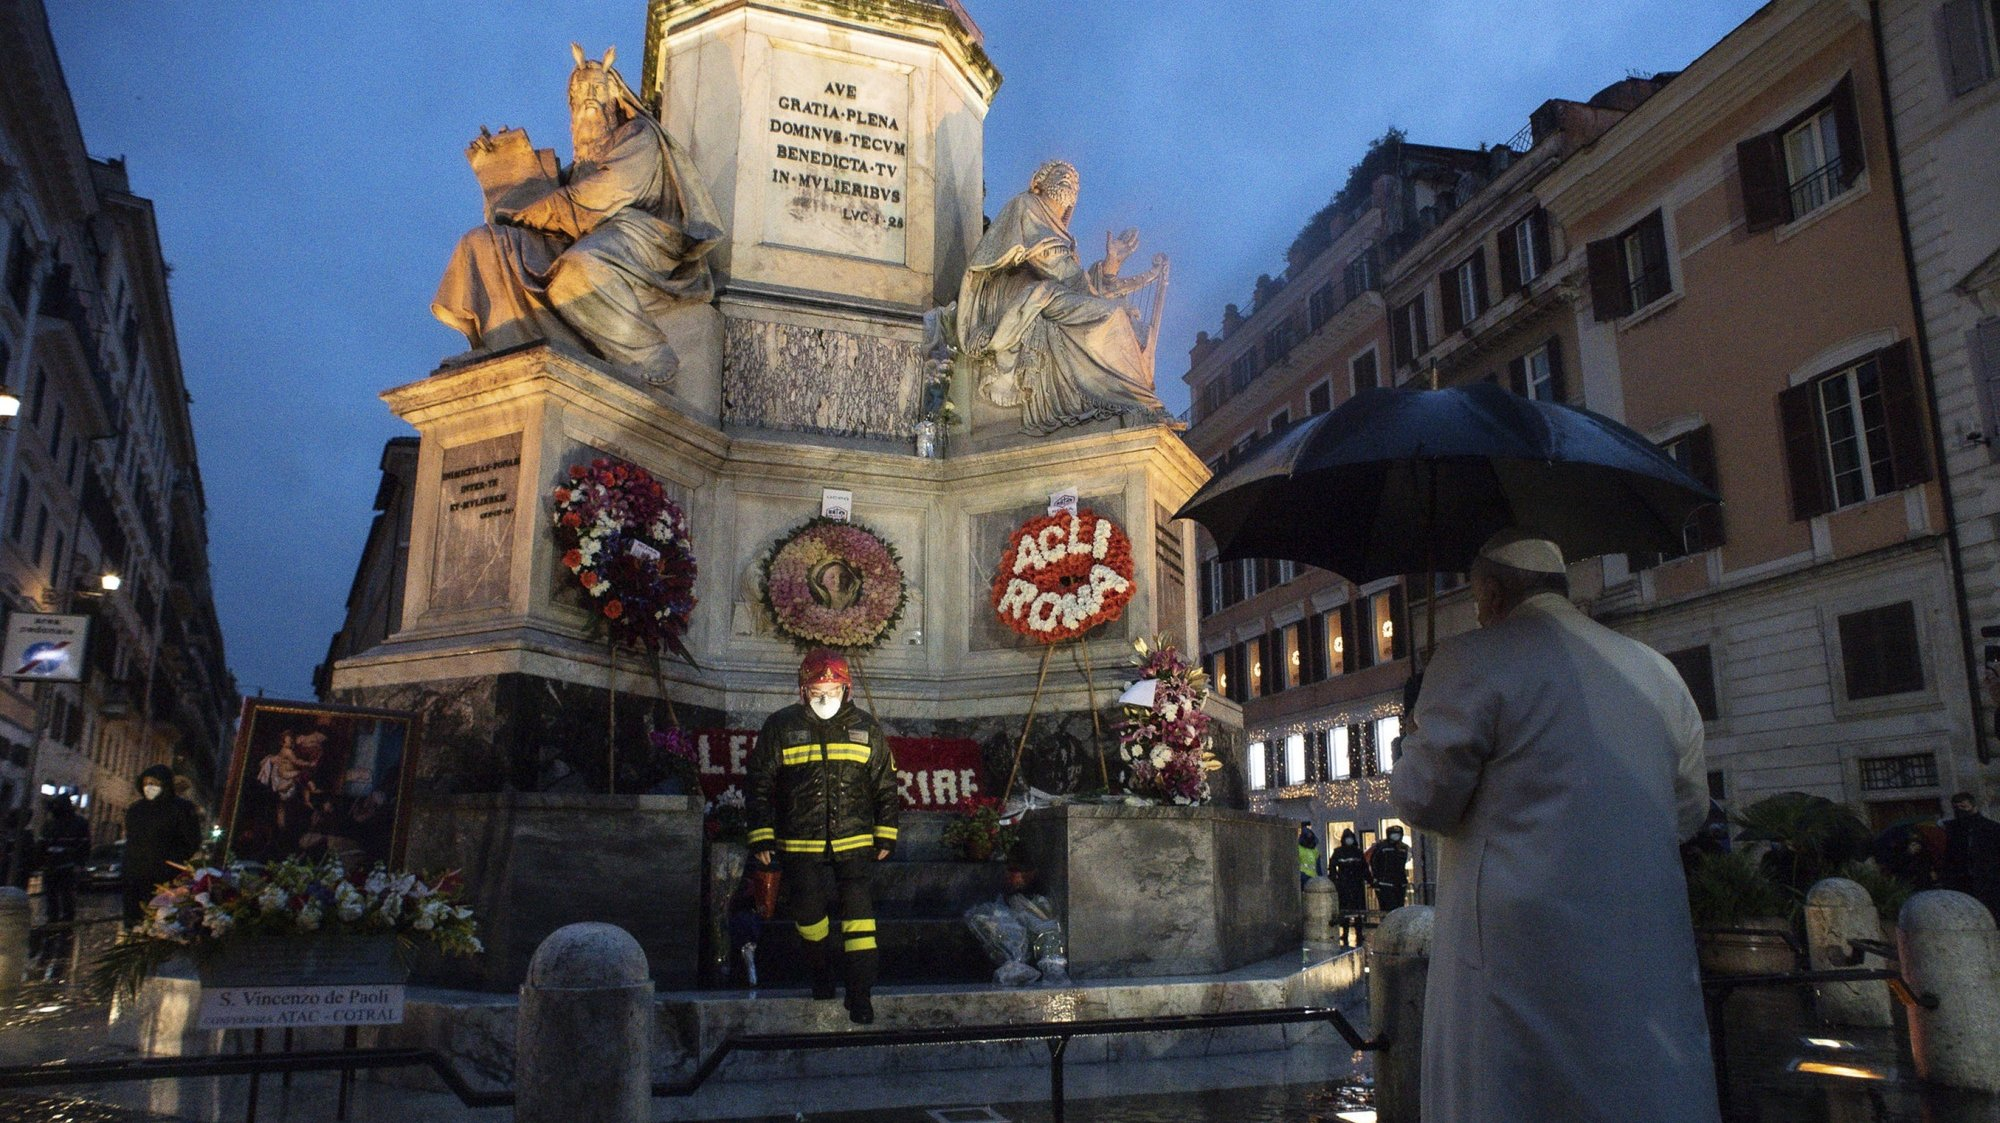 epa08869747 A handout picture provided by the Vatican Media shows Pope Francis during the prayer in  for the feast of the Immaculate (Festa dell'Immacolata) in Piazza di Spagna in Rome, Italy, 08 December 2020.  EPA/VATICAN MEDIA HANDOUT  HANDOUT EDITORIAL USE ONLY/NO SALES